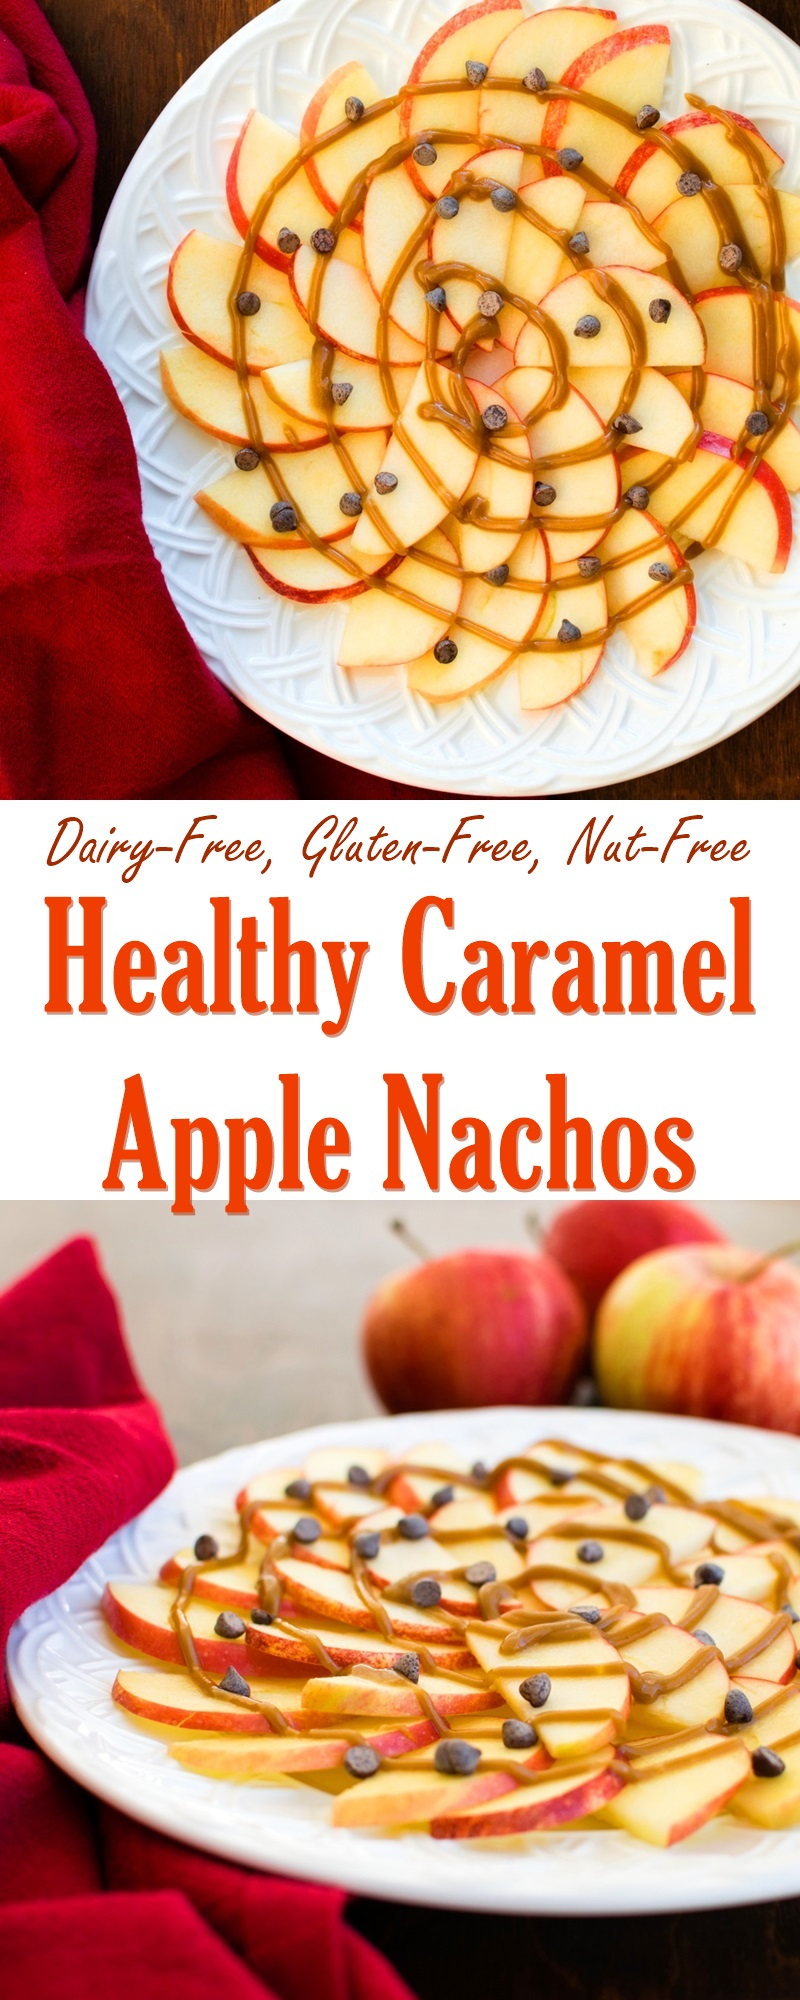 Healthy Caramel Apple Nachos Recipe - Fast, Easy, Just 4 Ingredients, Vegan, Dairy-Free, Gluten-Free, Nut-Free and Soy-Free